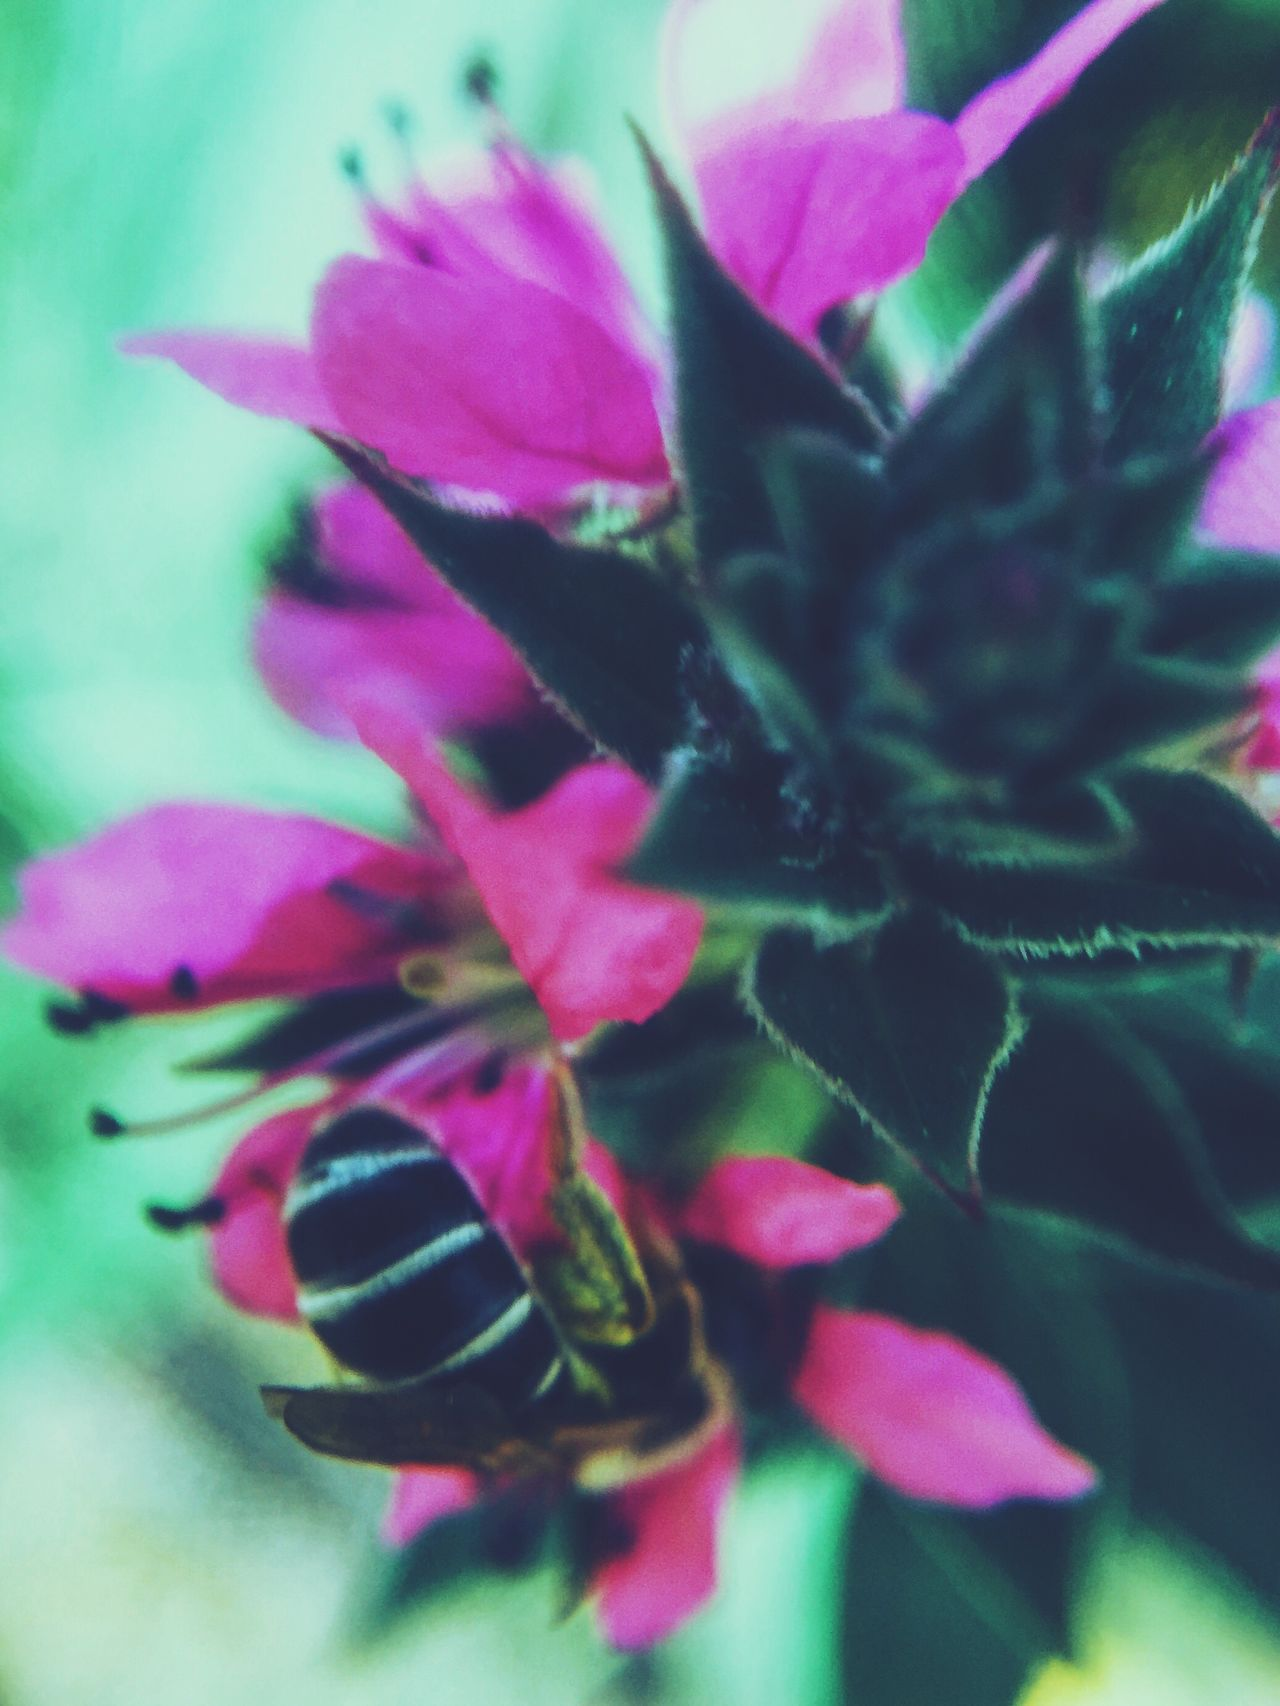 Bee Bees Bees And Flowers Beesofeyeem Beesonflowers Bee 🐝 Insect Insects  Flower Flowers Pinkflower Floral Florals Nature Taking Photos Nature On Your Doorstep VSCO Macro Photography Nature Photography VSCO Cam Macro Beauty Macro_collection Floralphotography Flowercloseup Olloclip Macro